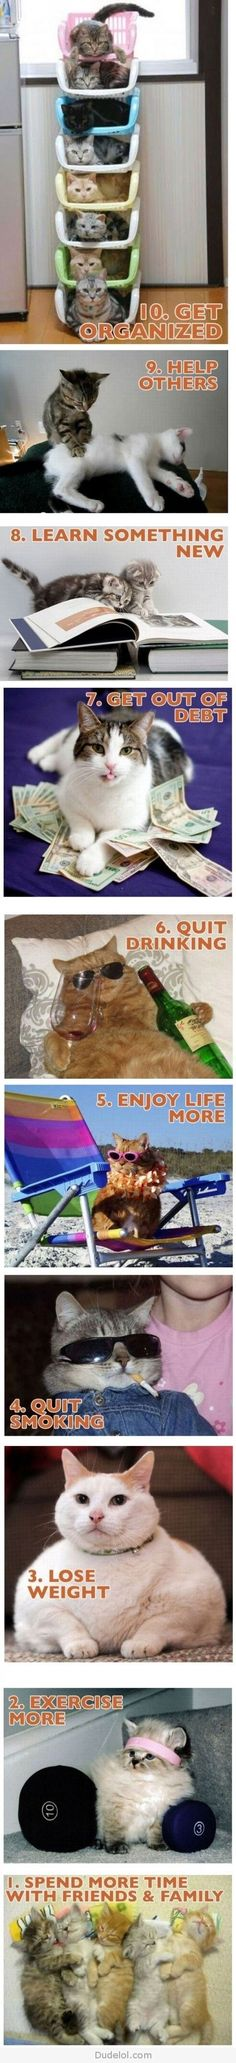 10 New Year Resolutions with Cats